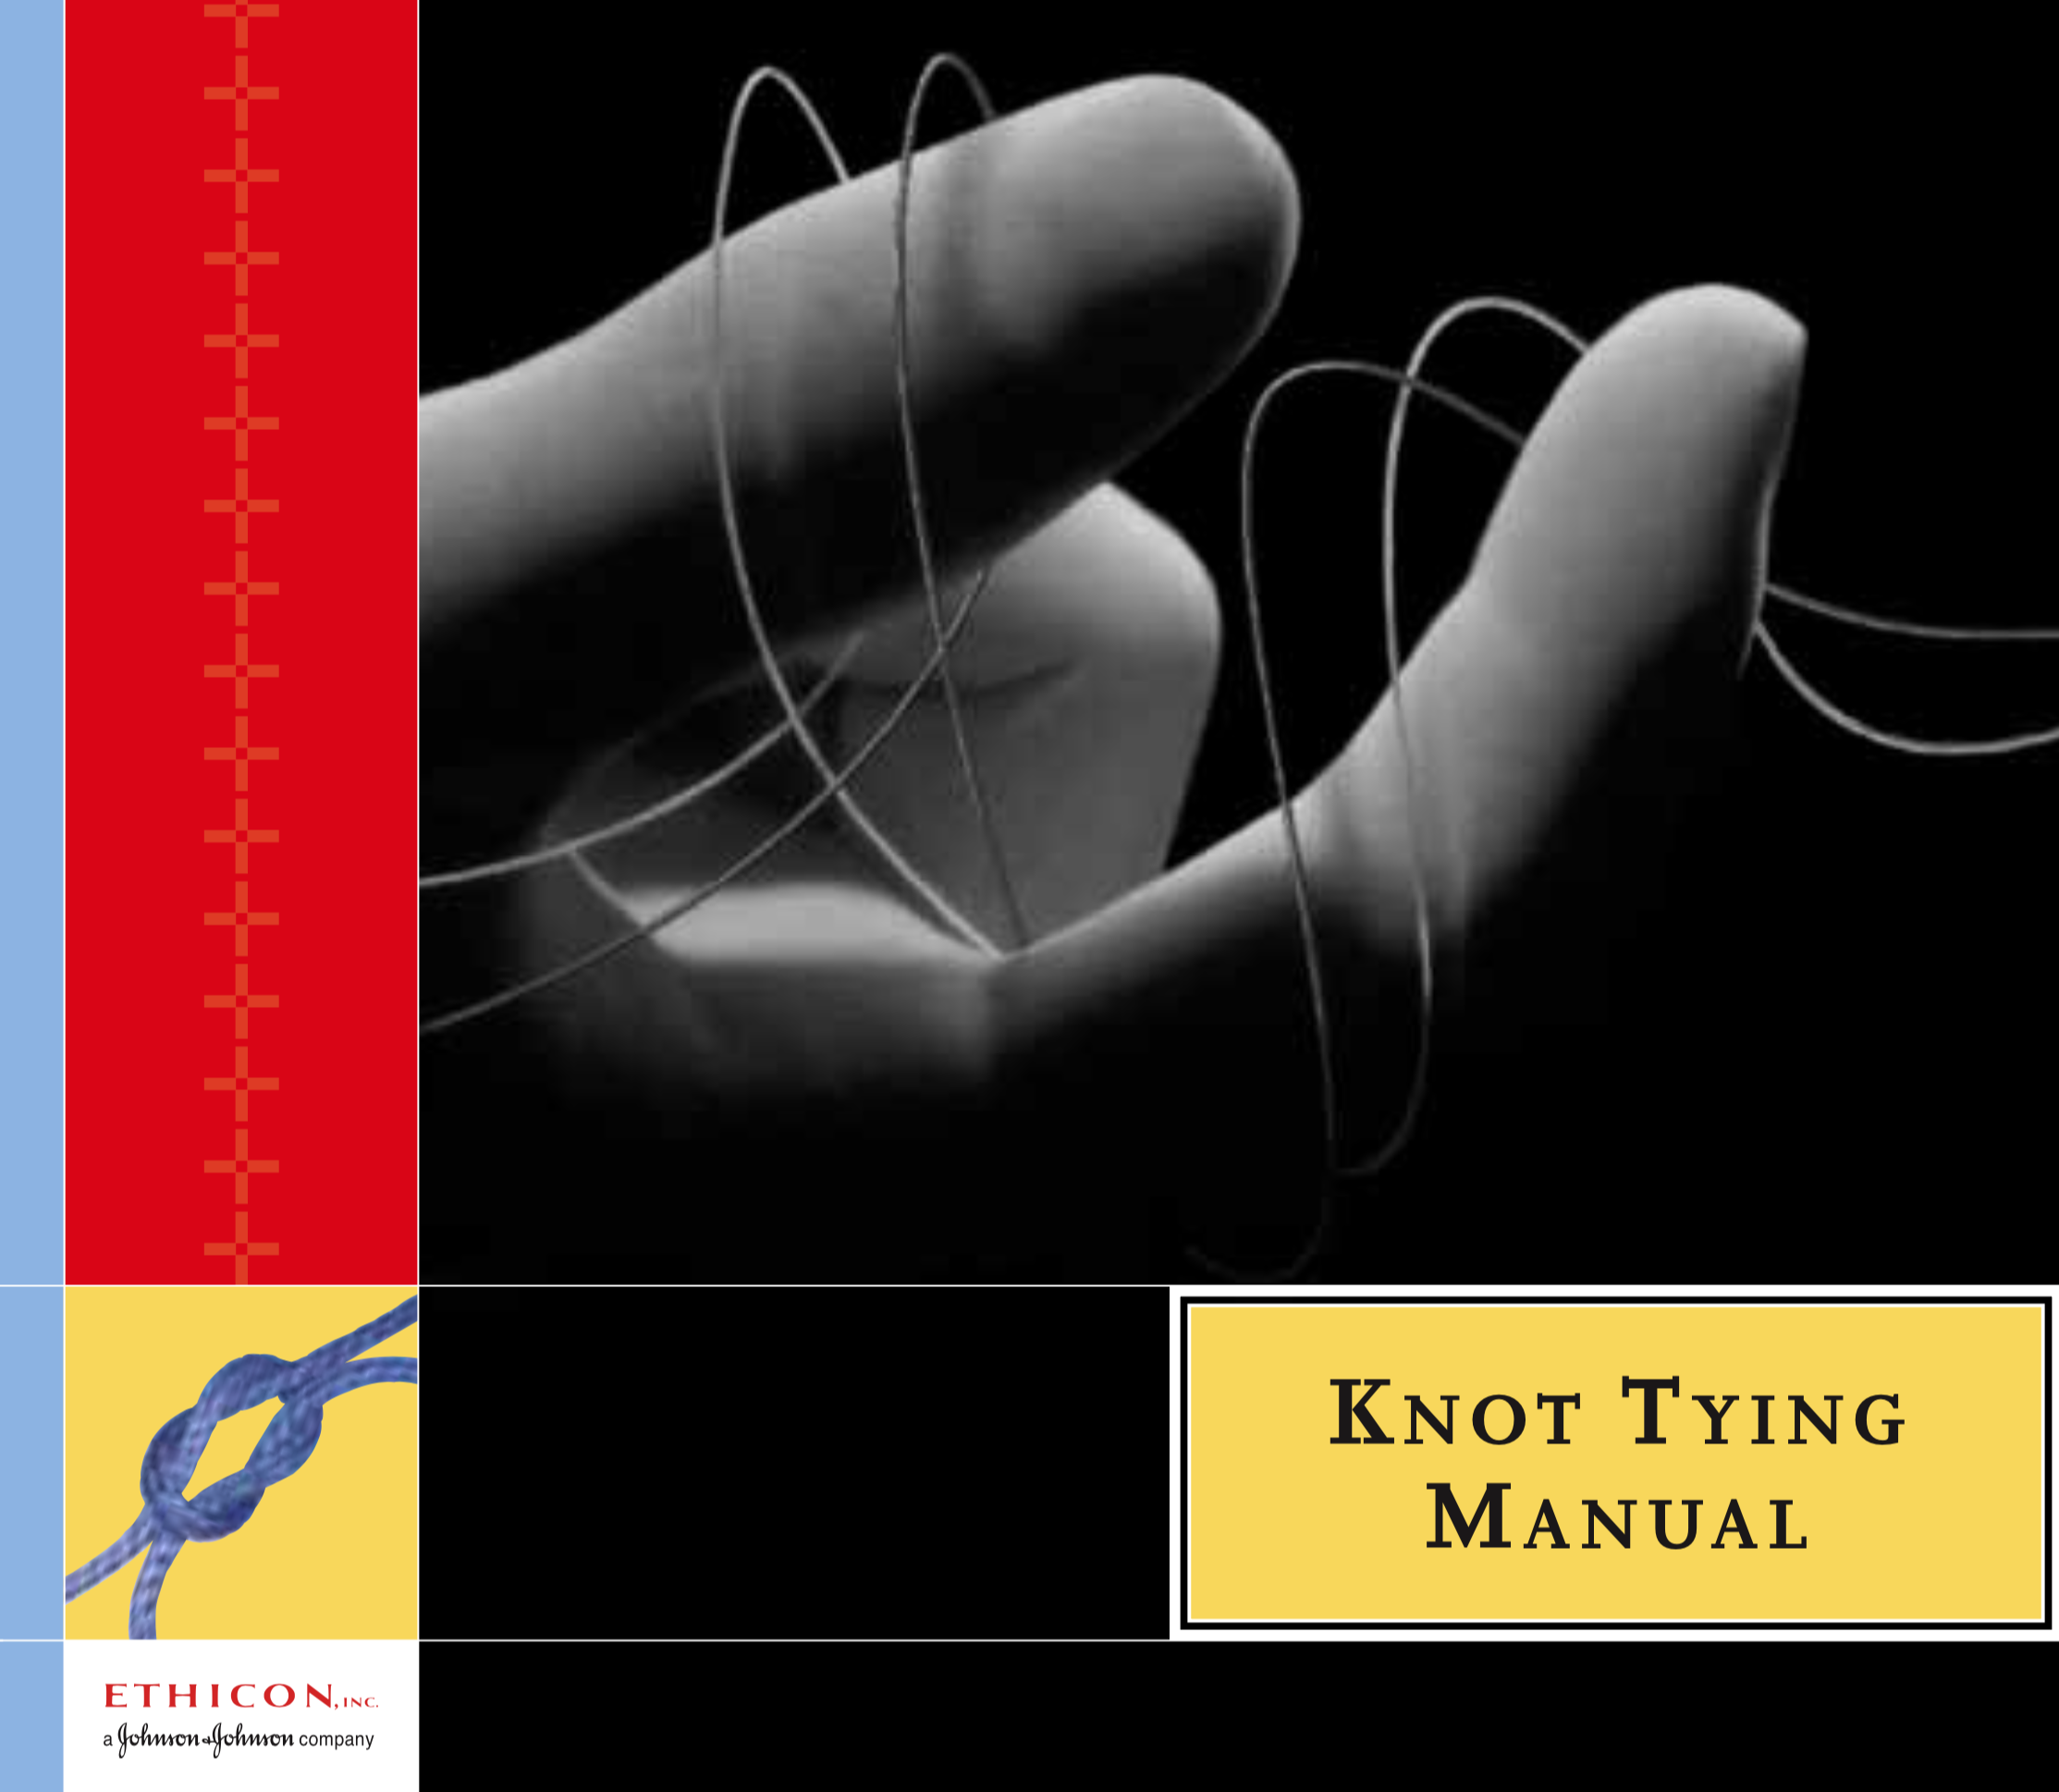 knot tying manual 2019